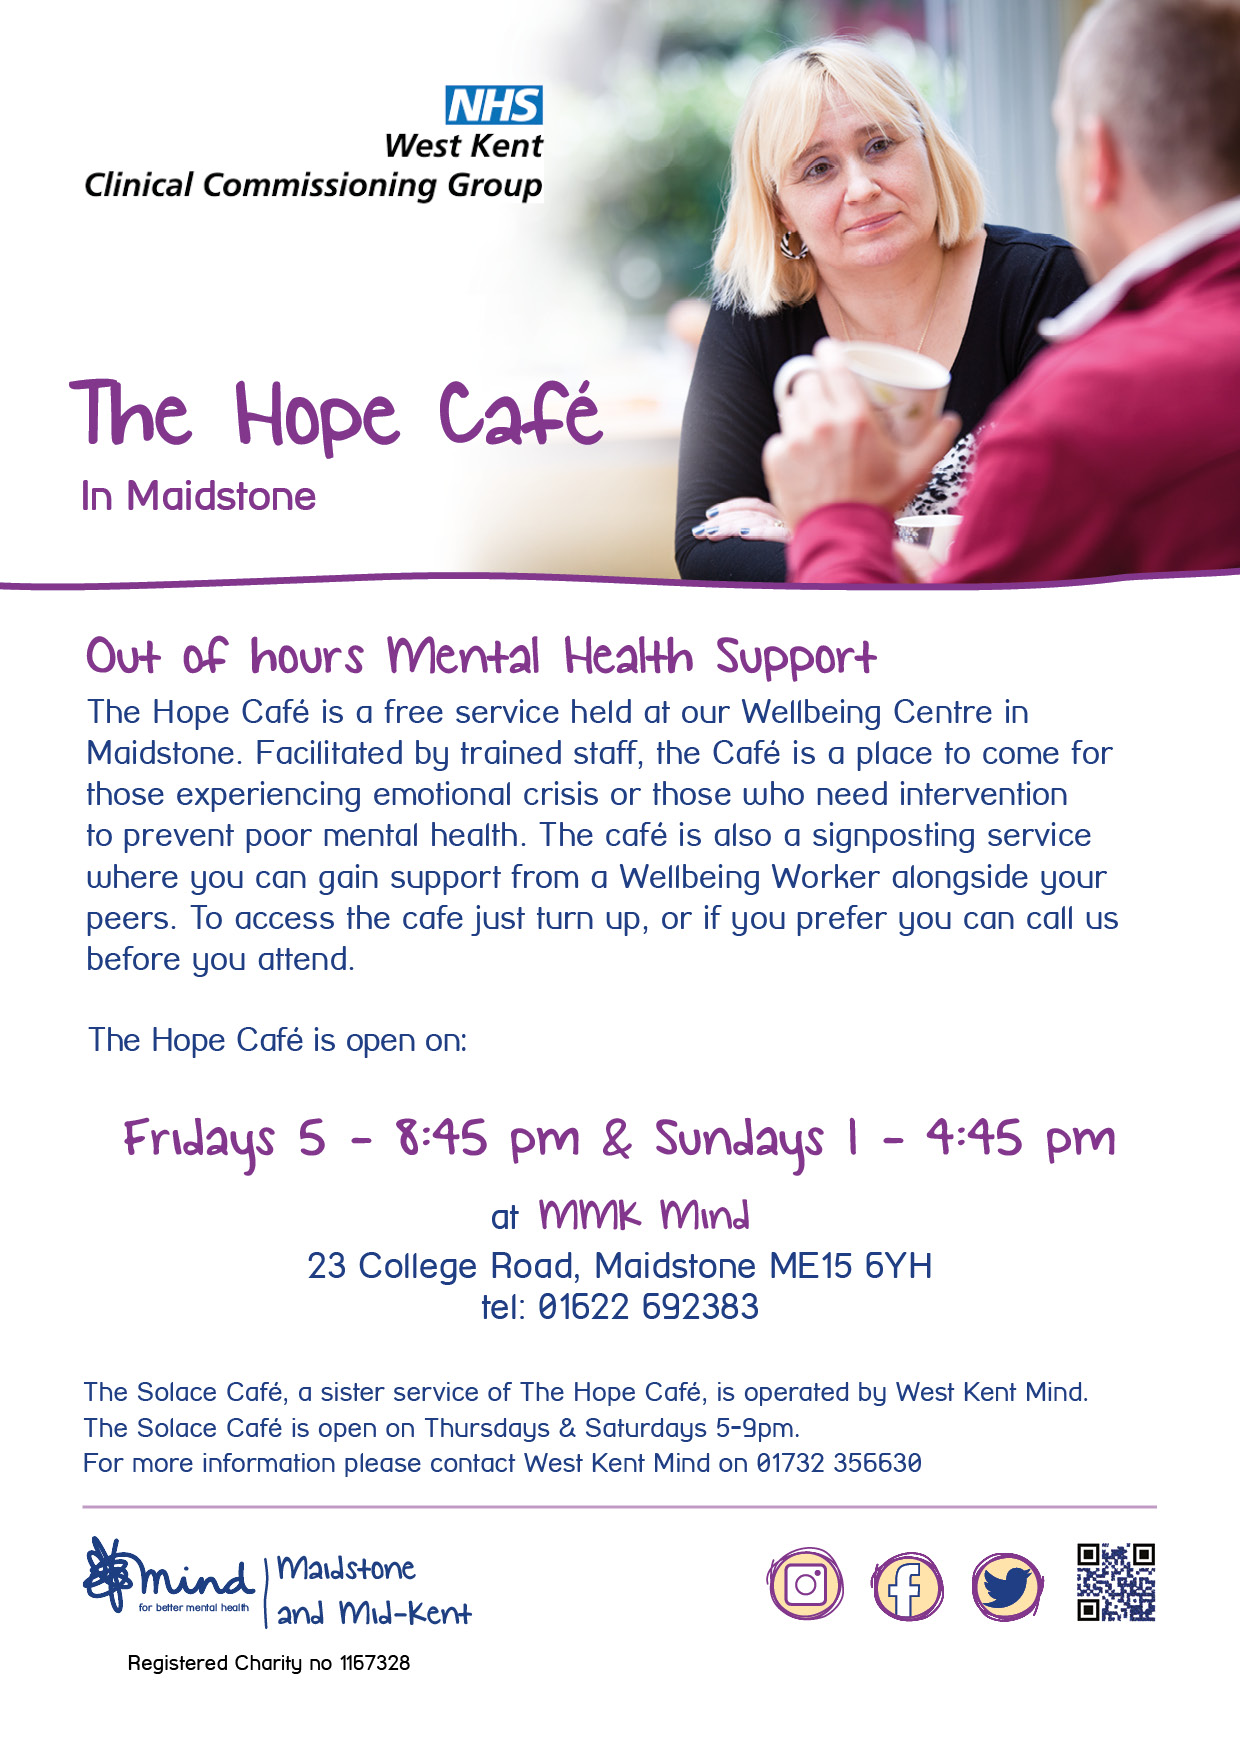 Hope Café - Out of hours Mental Health Support The Hope Café is a free service held at our Wellbeing Centre in Maidstone. Facilitated by trained staff, the Café is a place to come for those experiencing emotional crisis or those who need intervention to prevent poor mental health. The café is also a signposting service where you can gain support from a Wellbeing Worker alongside your peers. To access the cafe just turn up, or if you prefer you can call us before you attend. The Hope Café is open on: Fridays 5 - 8:45 pm & Sundays 1 - 4:45 pm at MMK Mind 23 College Road, Maidstone ME15 6YH tel: 01622 692383. The Solace Café, a sister service of The Hope Café, is operated by West Kent Mind. The Solace Café is open on Thursdays & Saturdays 5-9pm. For more information please contact West Kent Mind on 01732 356630